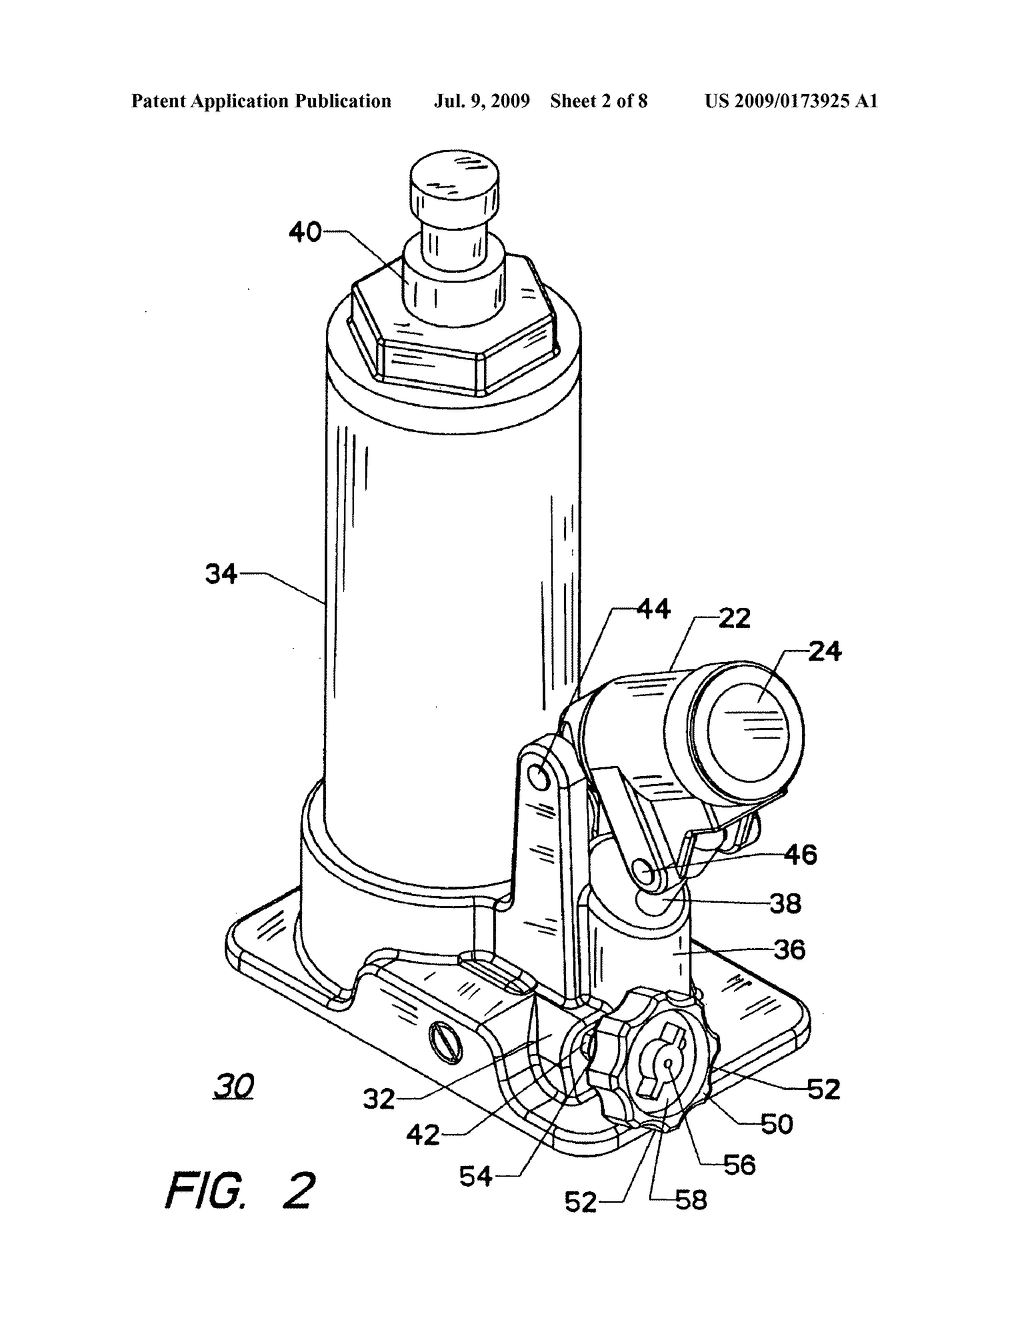 hydraulic bottle jack with a control valve having a control knob and rh patentsencyclopedia com hydraulic bottle jack diagram Bottle Jacks How They Work